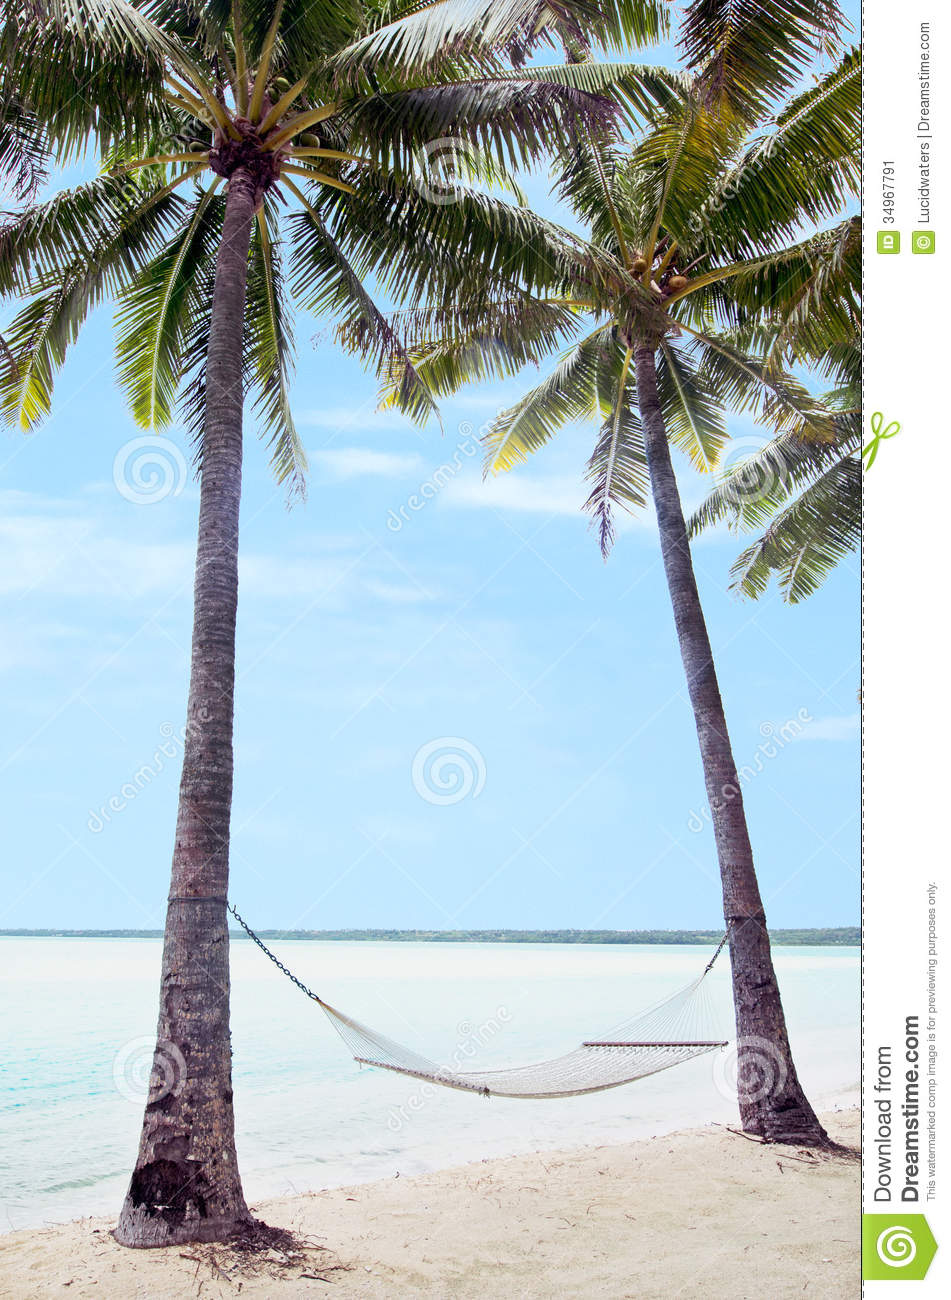 Hammock On Coconut Trees In Tropical Island Stock Image